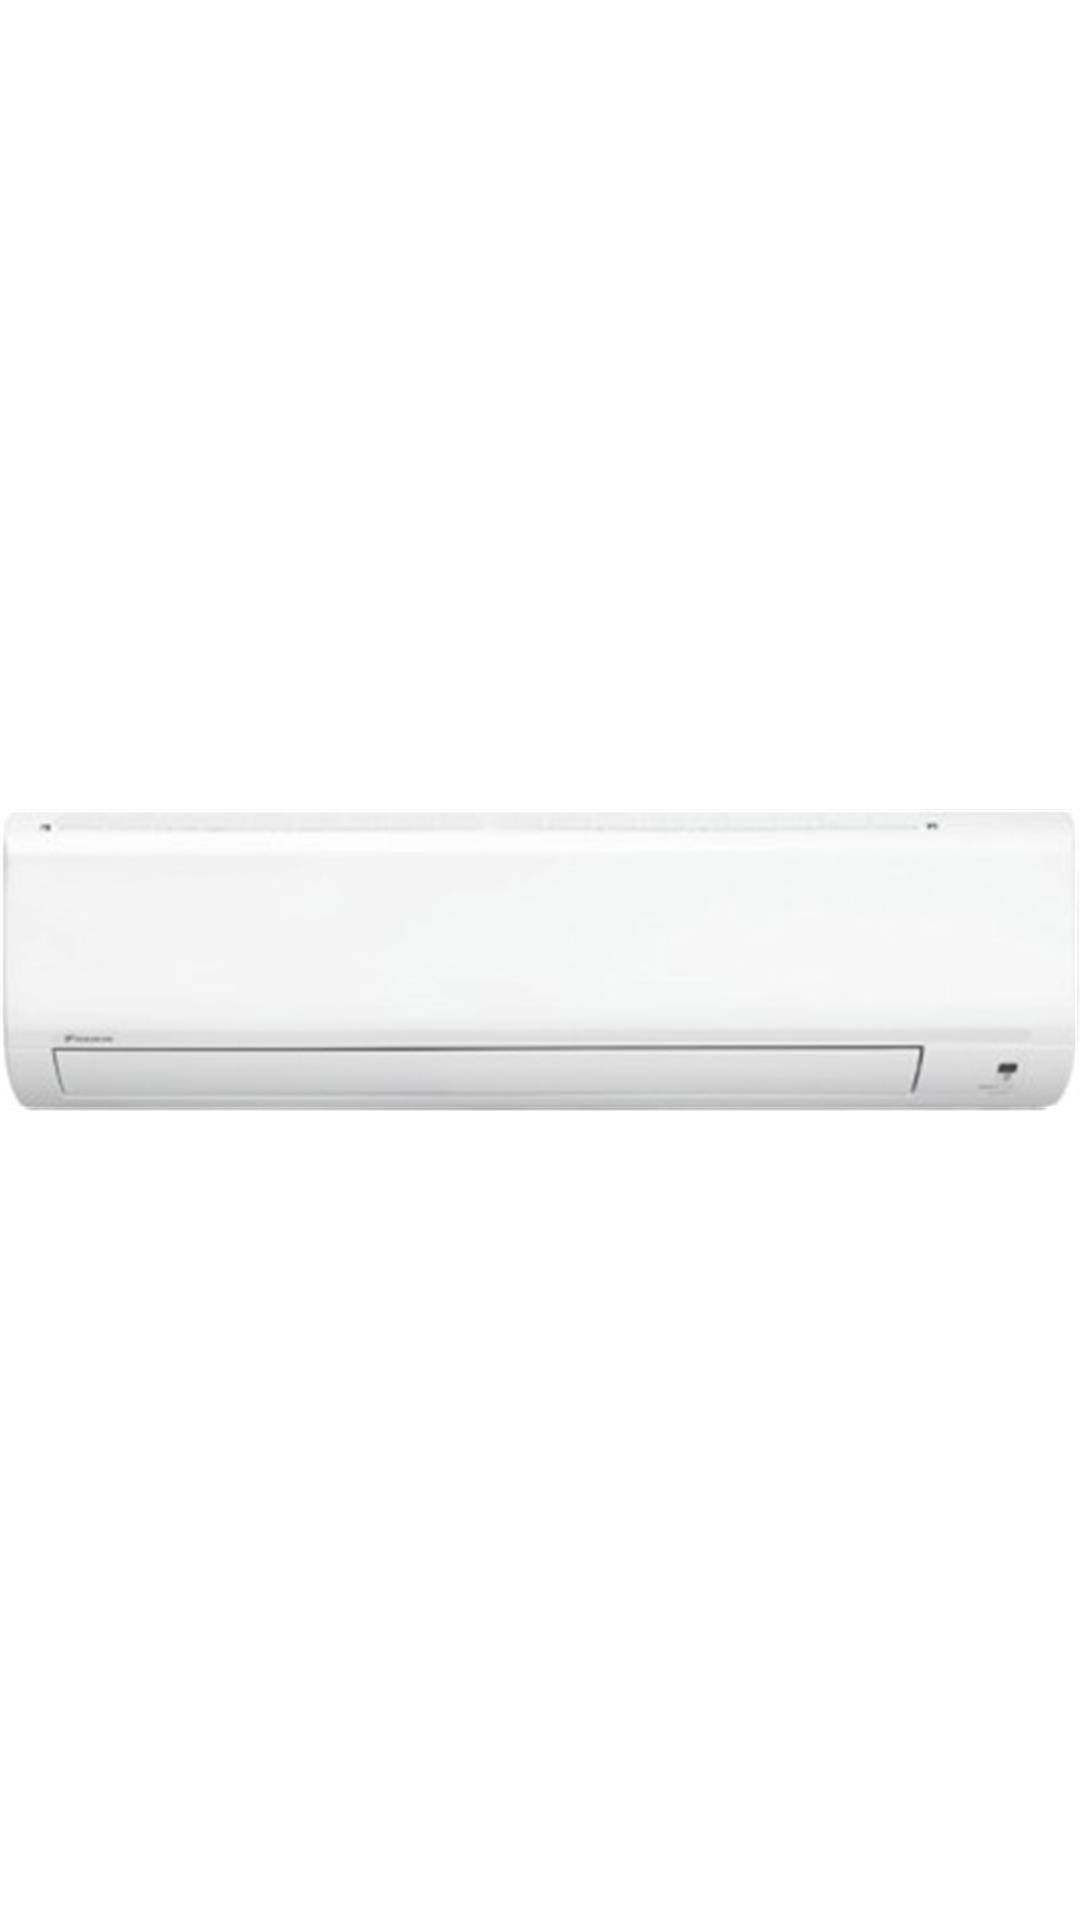 DAIKIN 1.5 TON SPLIT AIR CONDITIONER FTF50PRV16 Photos Images and  #656566